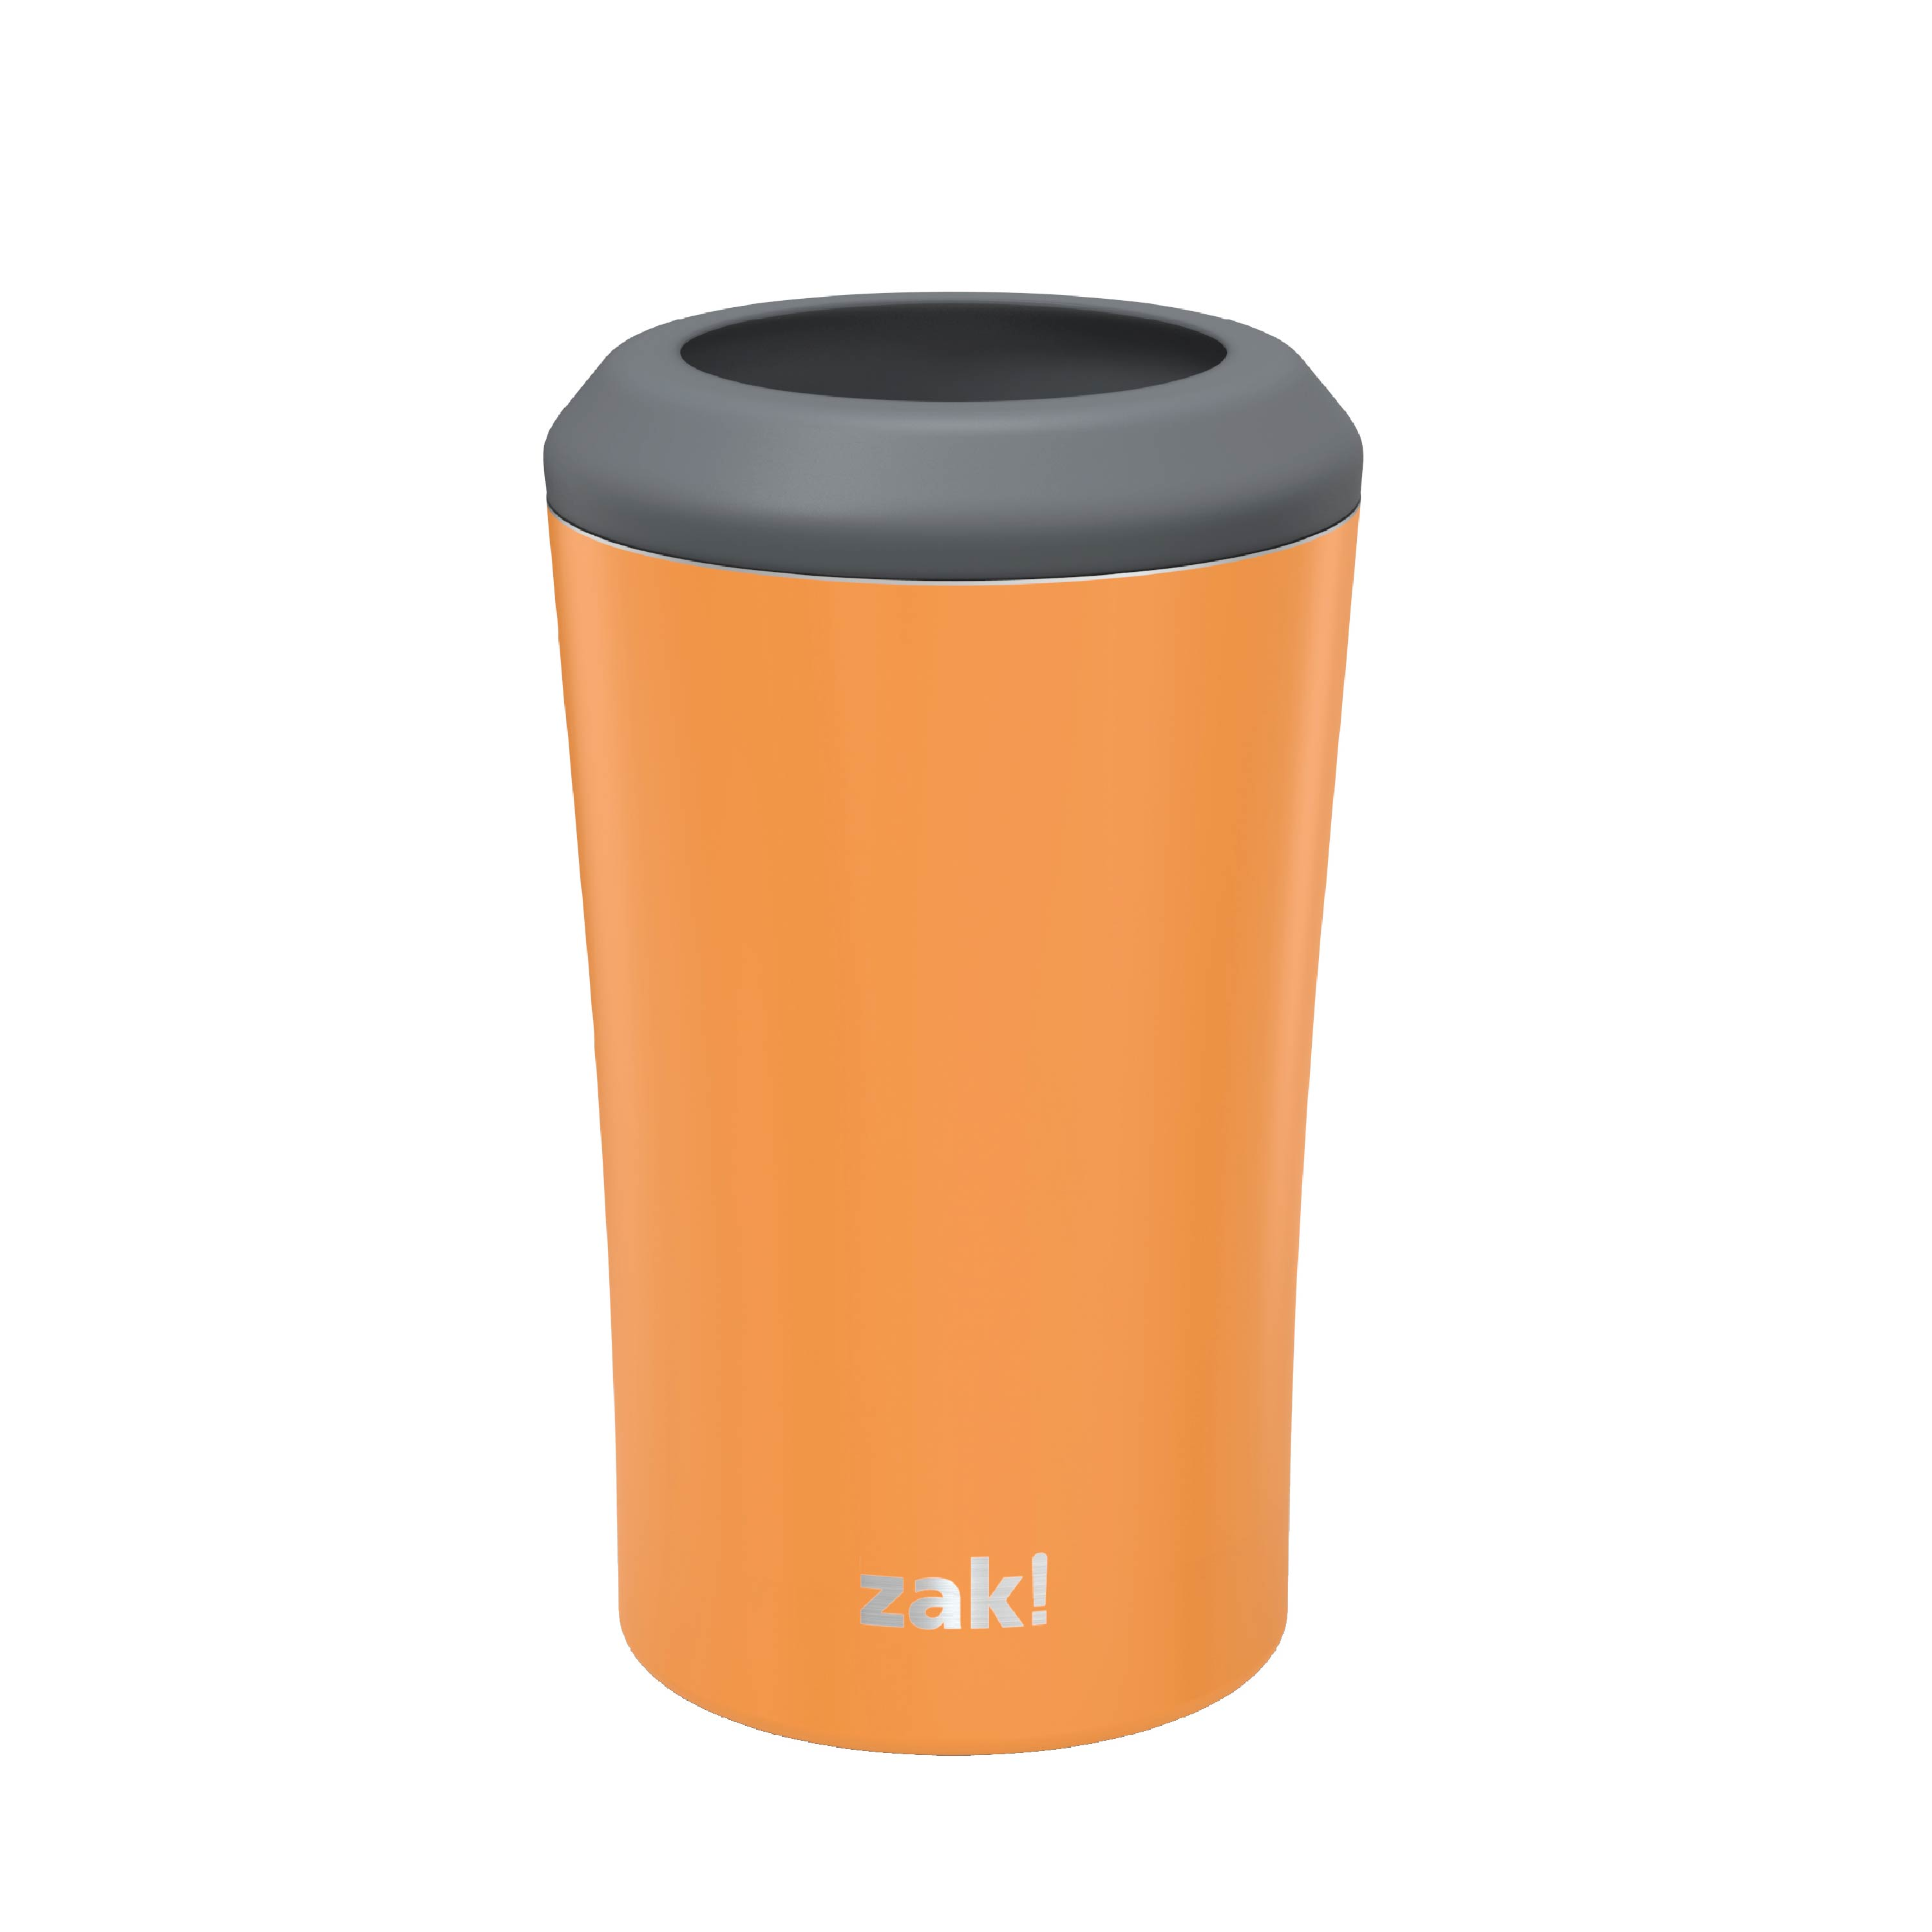 Zak Hydration 12 ounce Double Wall Stainless Steel Can and Bottle Cooler with Vacuum Insulation, Tangerine image